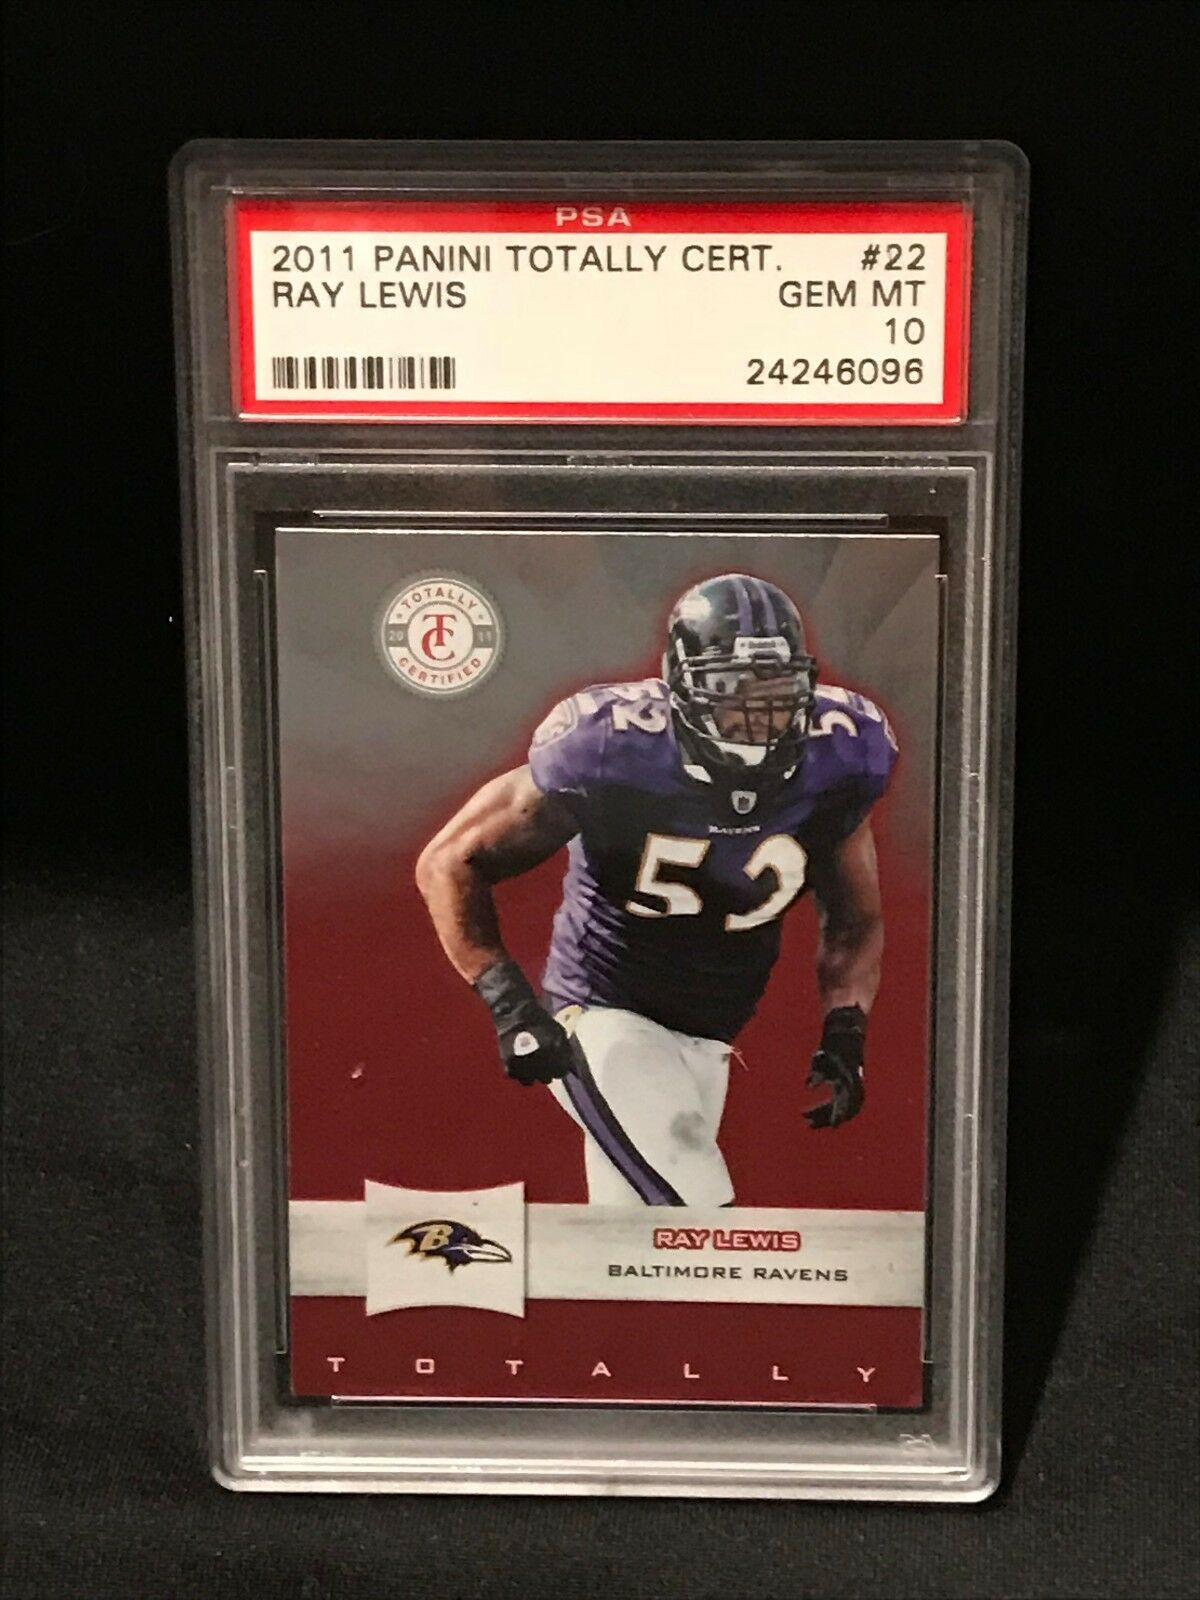 2011 PANINI TOTALLY CERTIFIED RAY LEWIS PSA 10